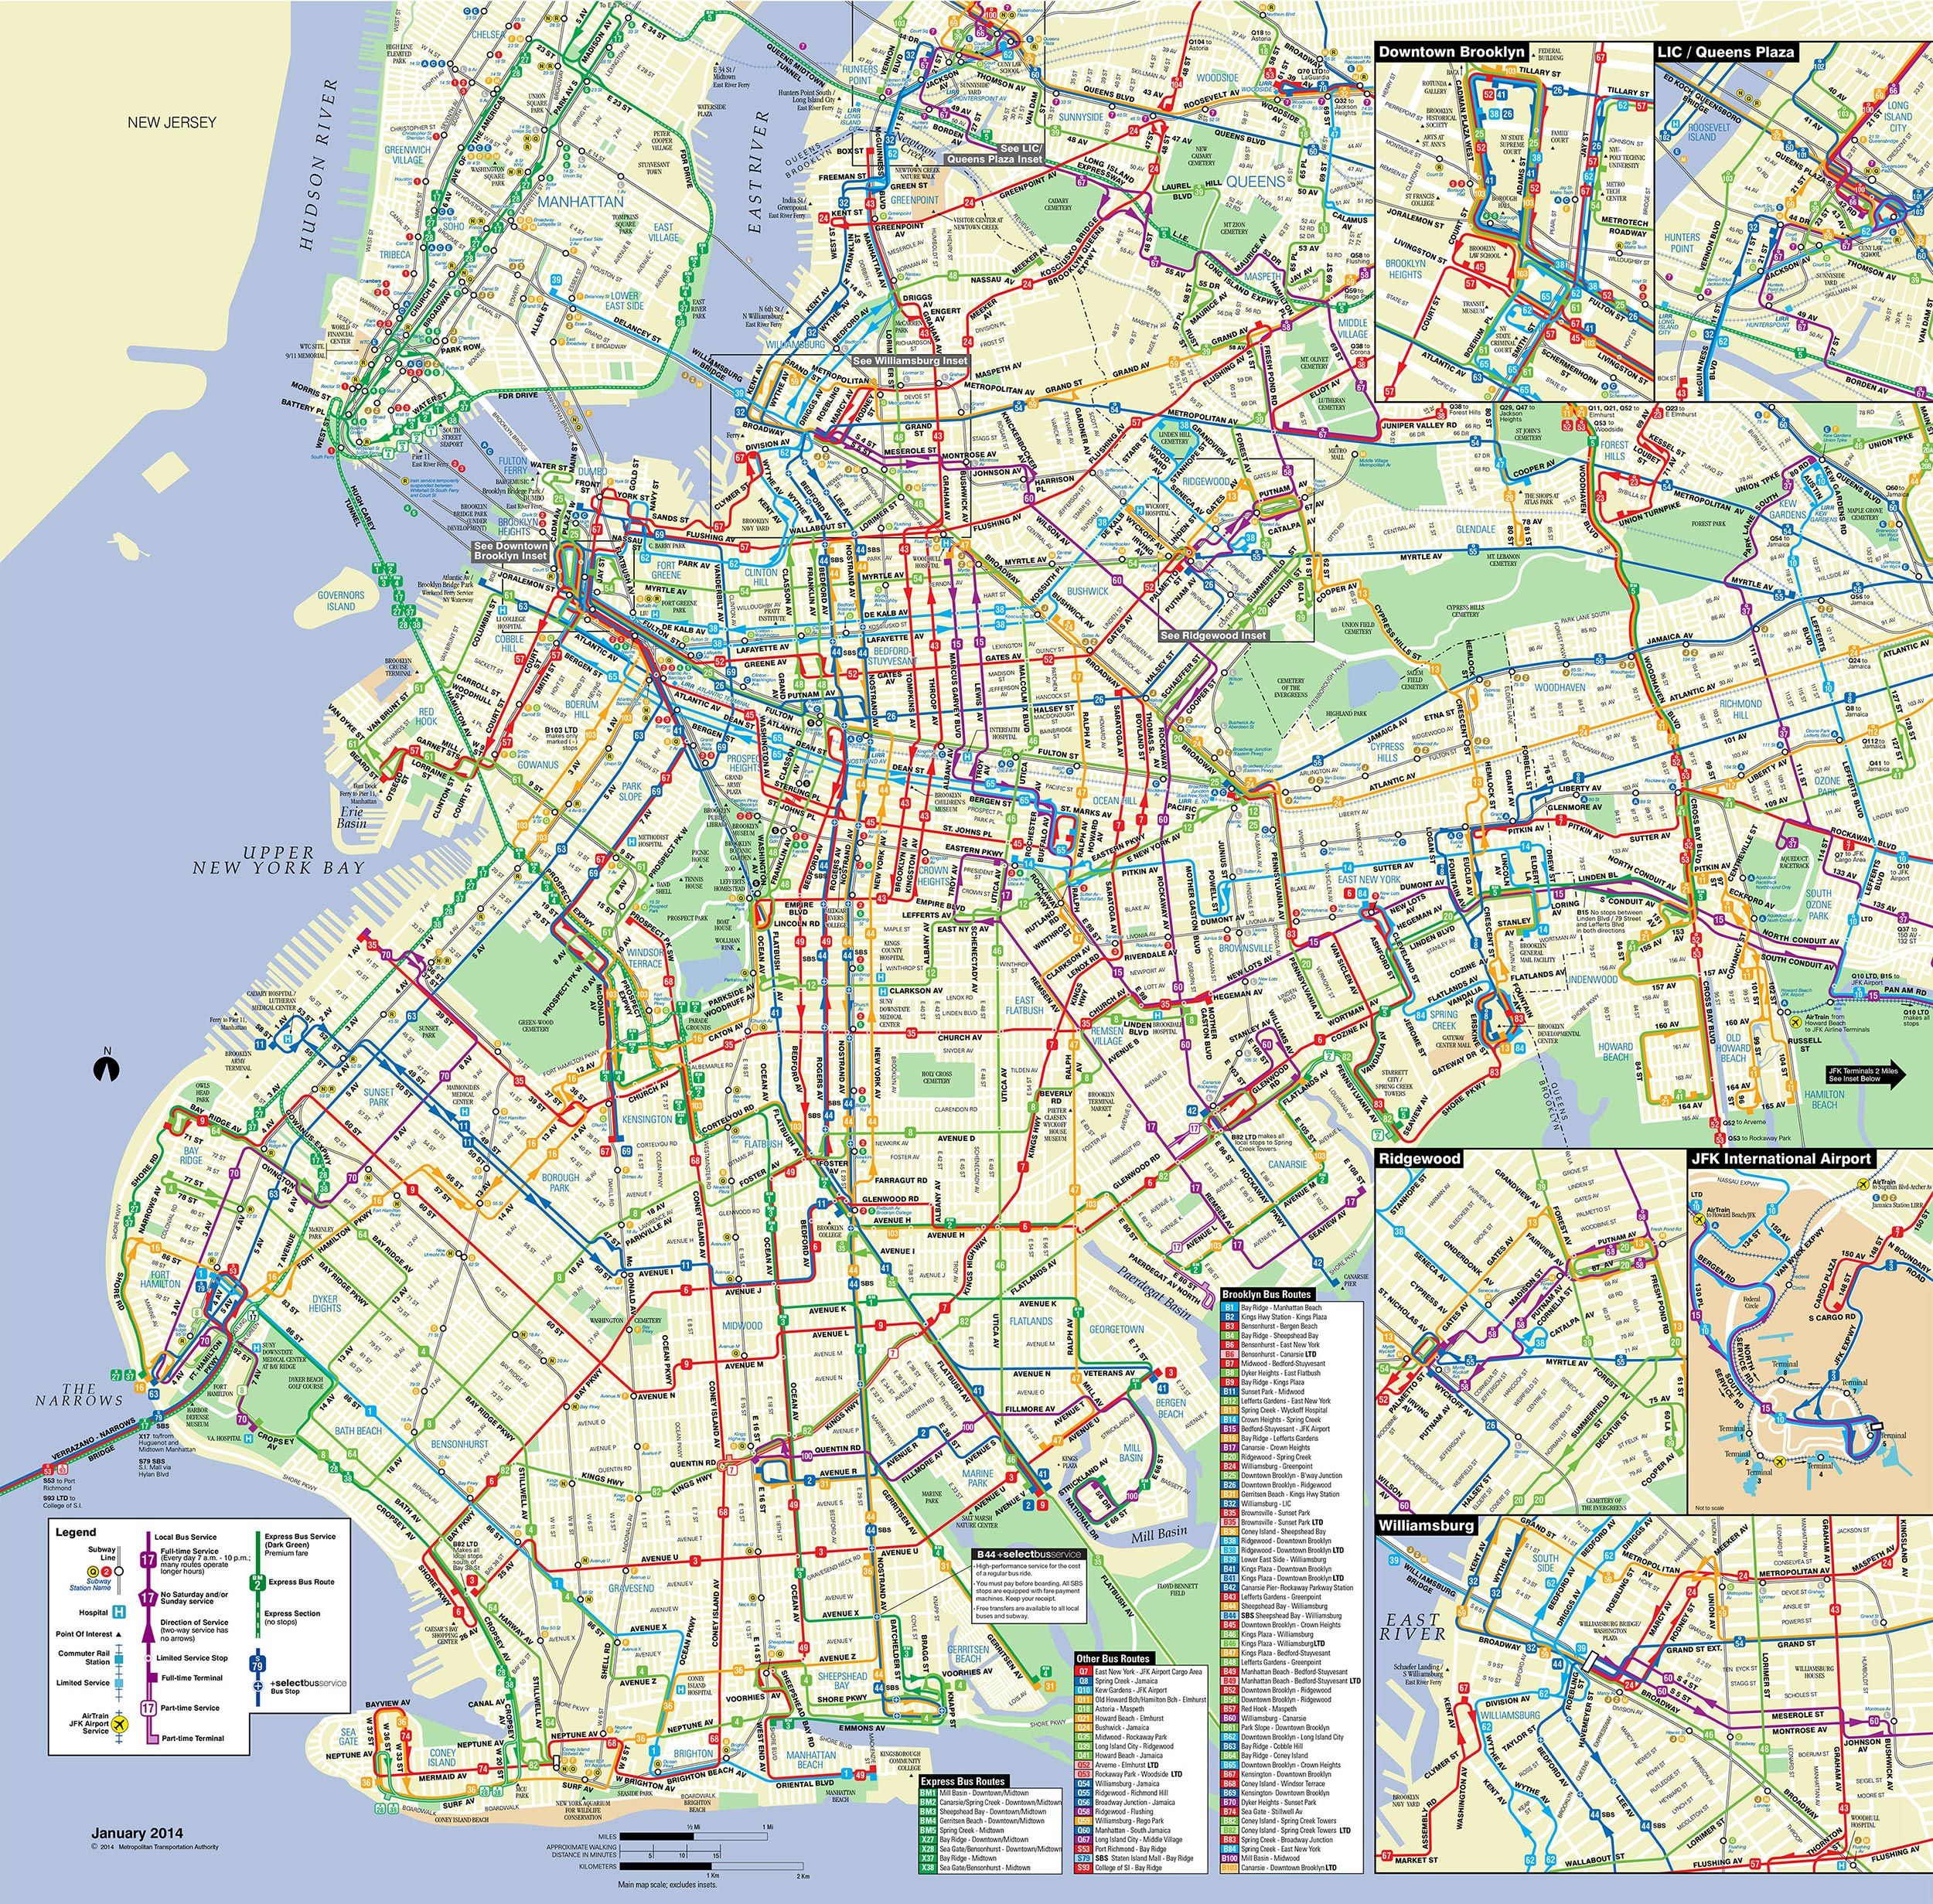 Map Of Nyc Bus: Stations & Lines - New York Downtown Map Printable